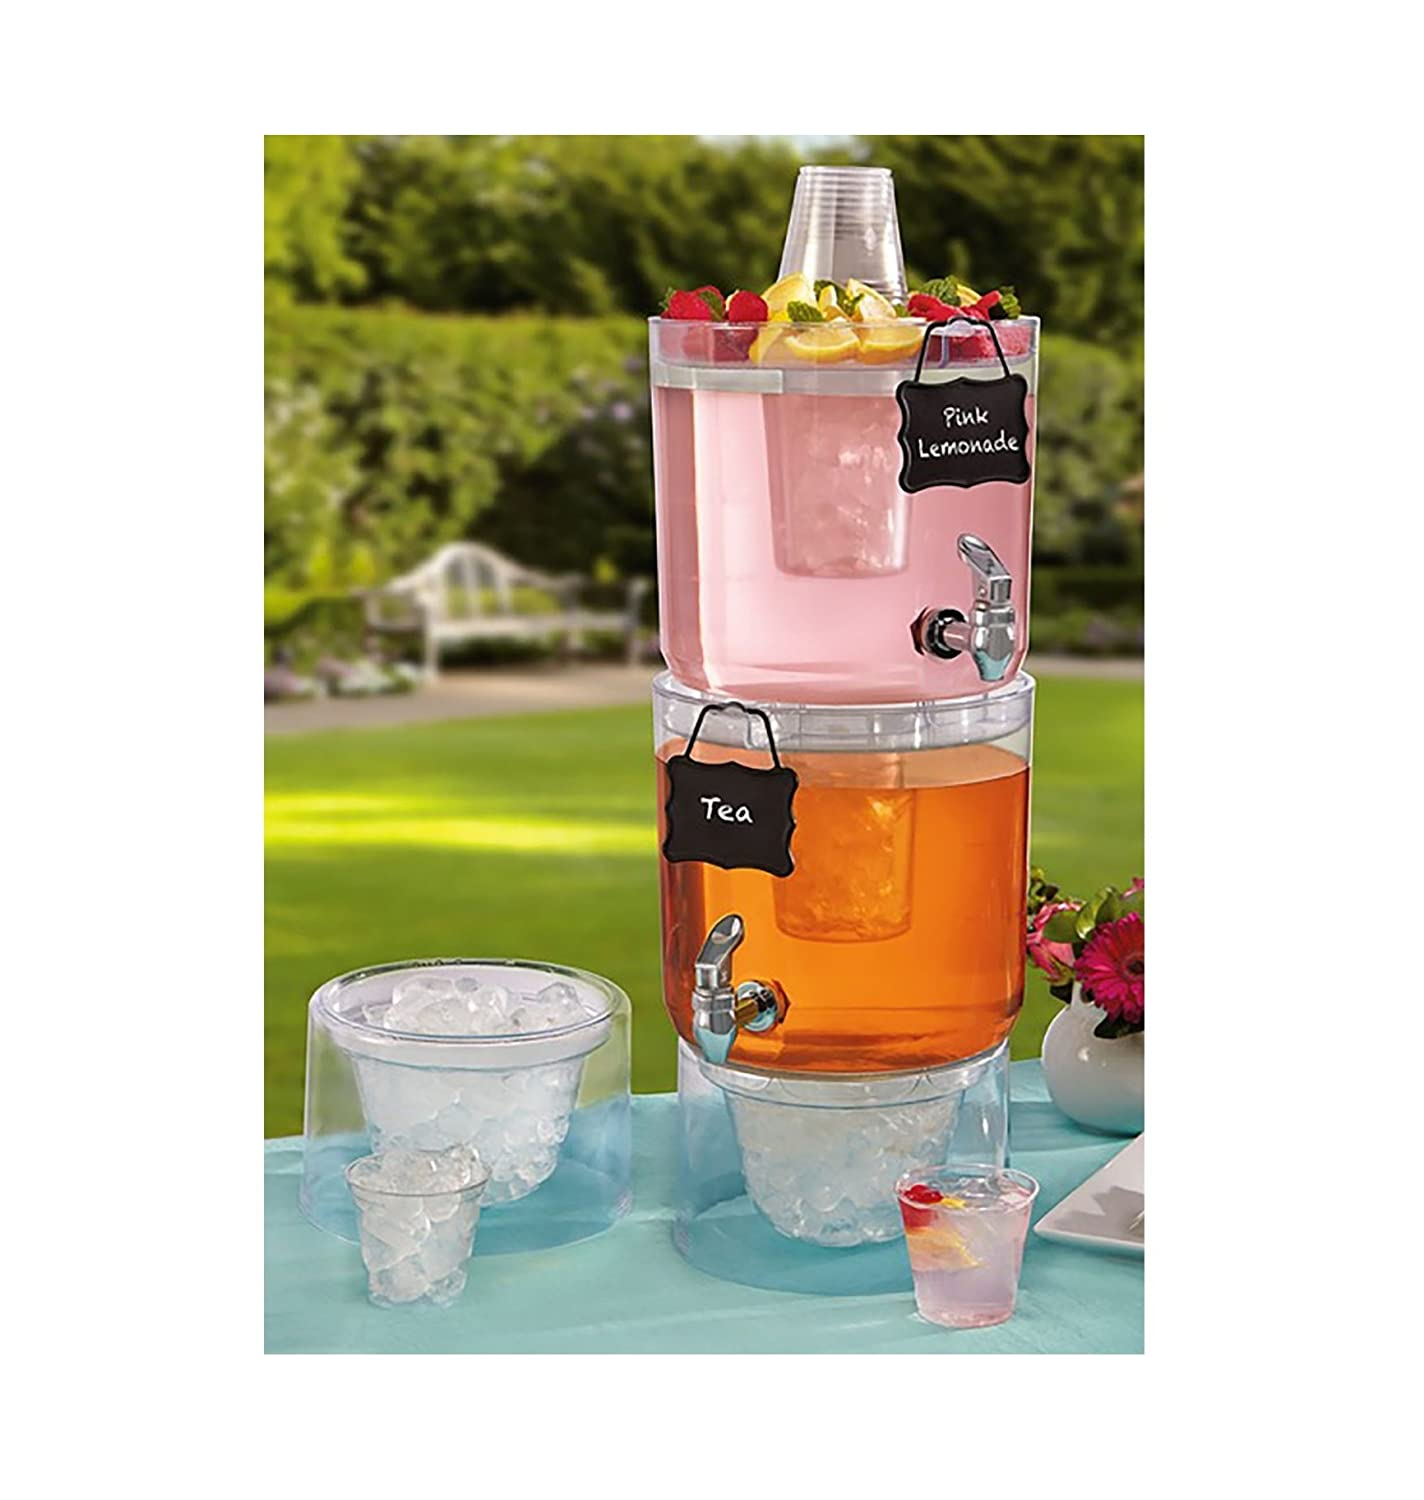 This Is A Stackable Dispenser For Parties One Of The Birthday Gift Ideas 35 Year Old Woman And She Can Use While Has Guests At Her Home